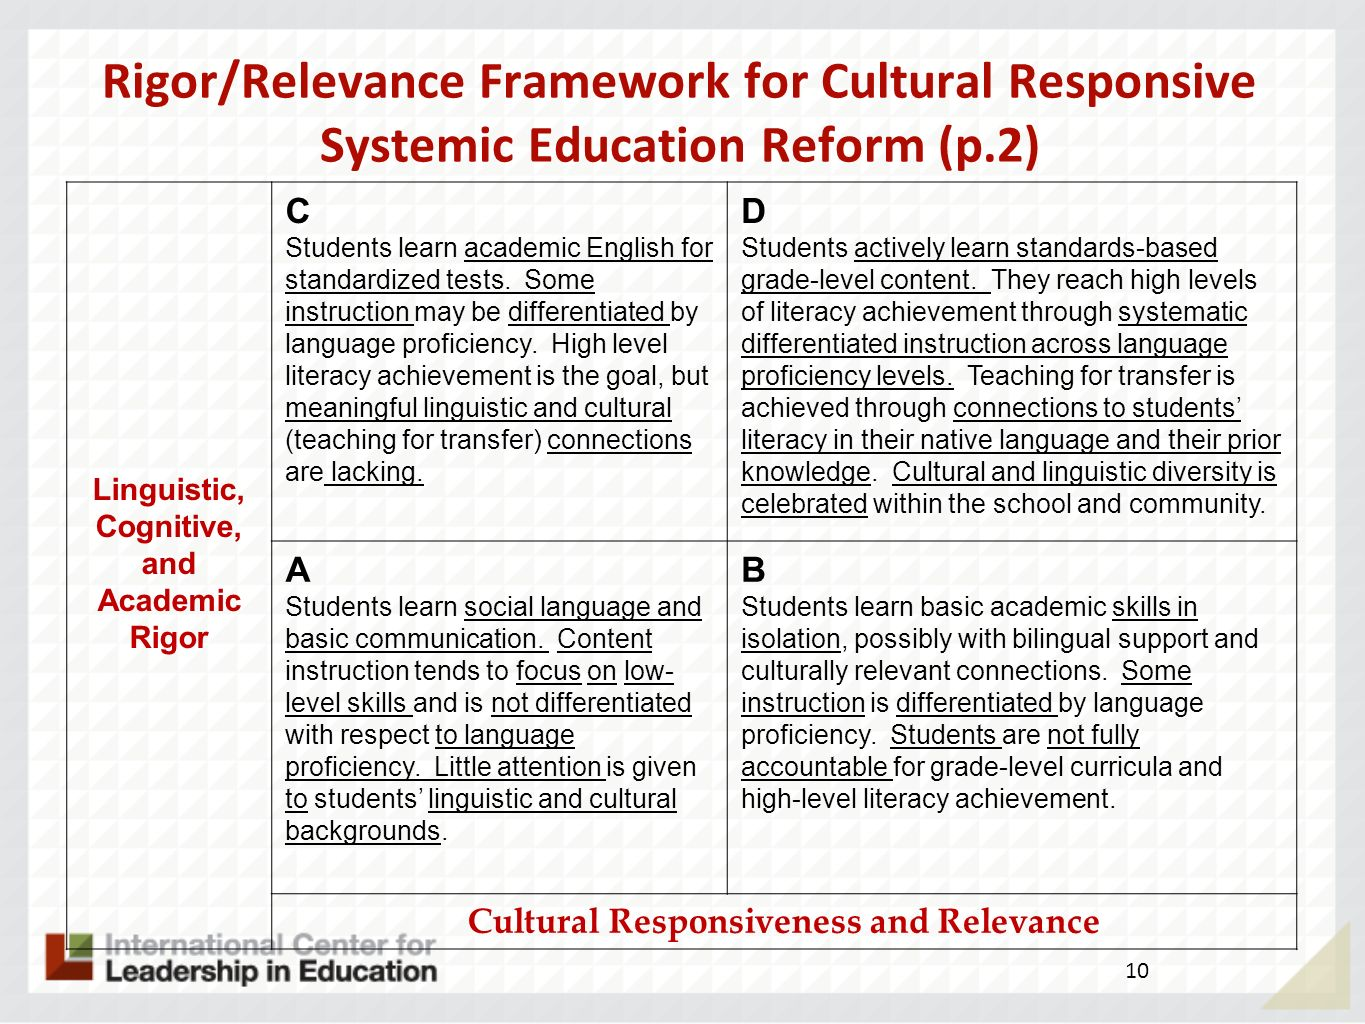 Rigor/Relevance Framework for Cultural Responsive Systemic Education Reform (p.2)